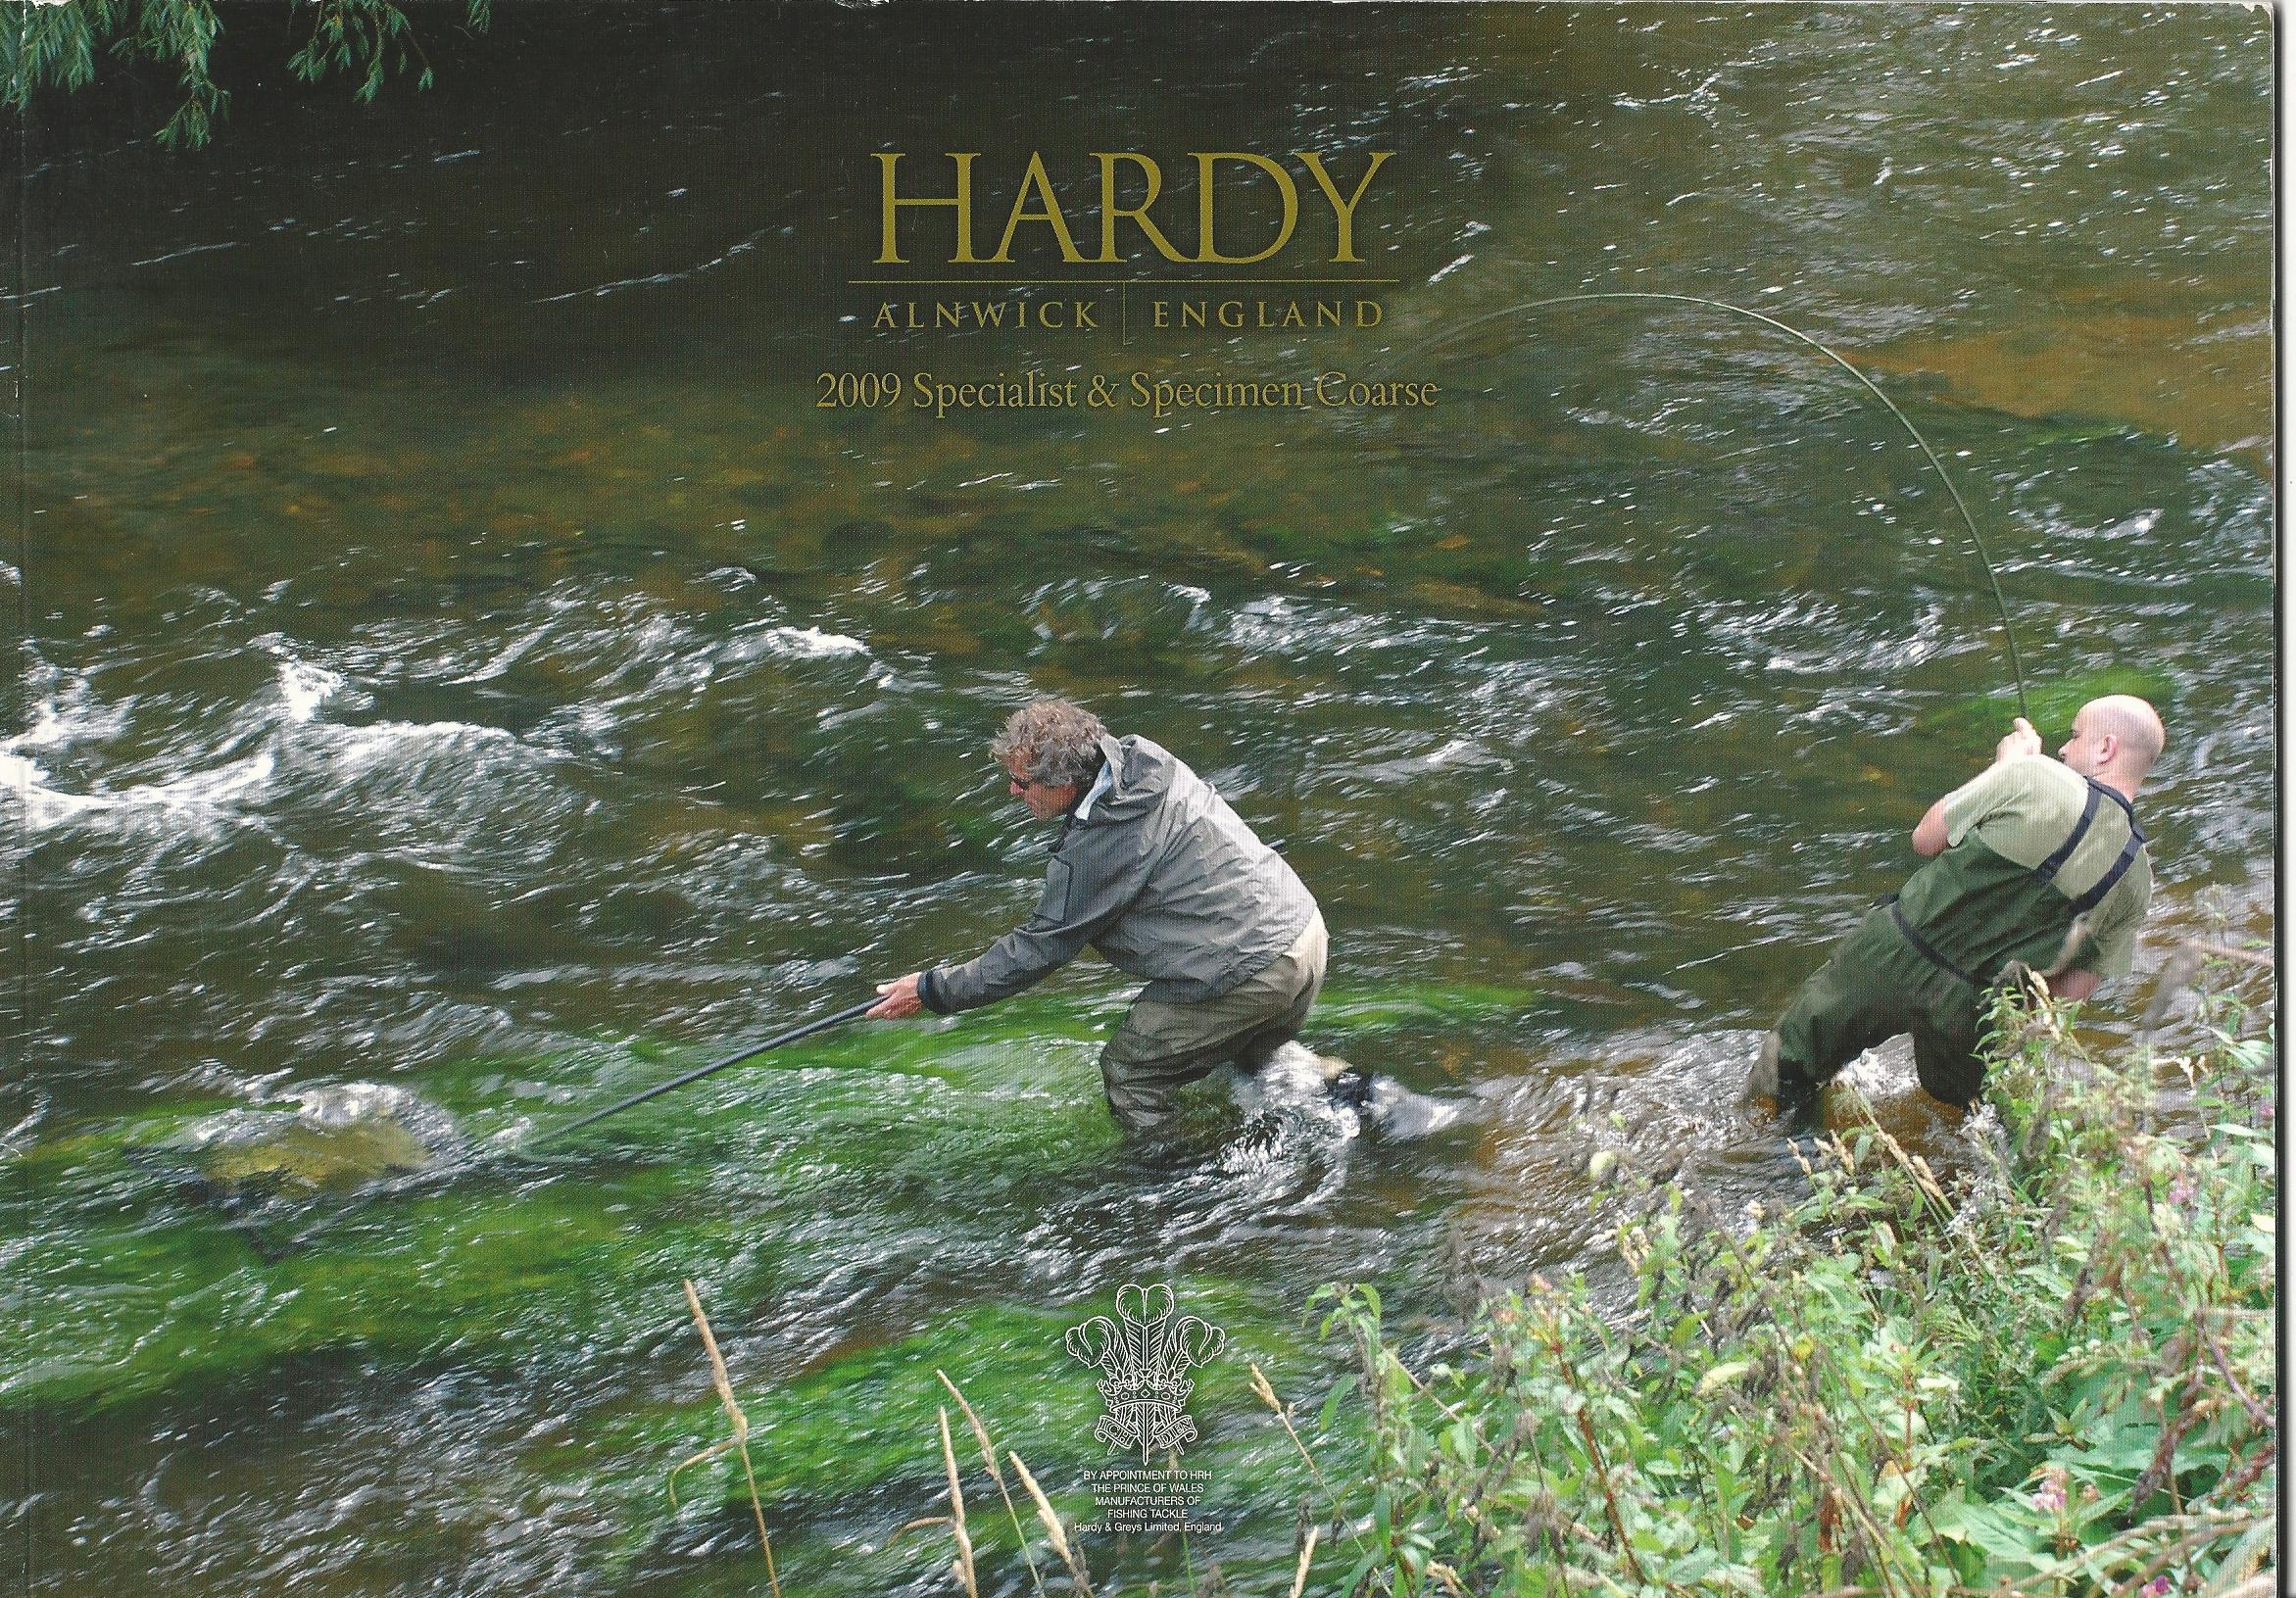 Image for Hardy Tackling the World & Hardy 2009 Specialist & Specimen Coarse.